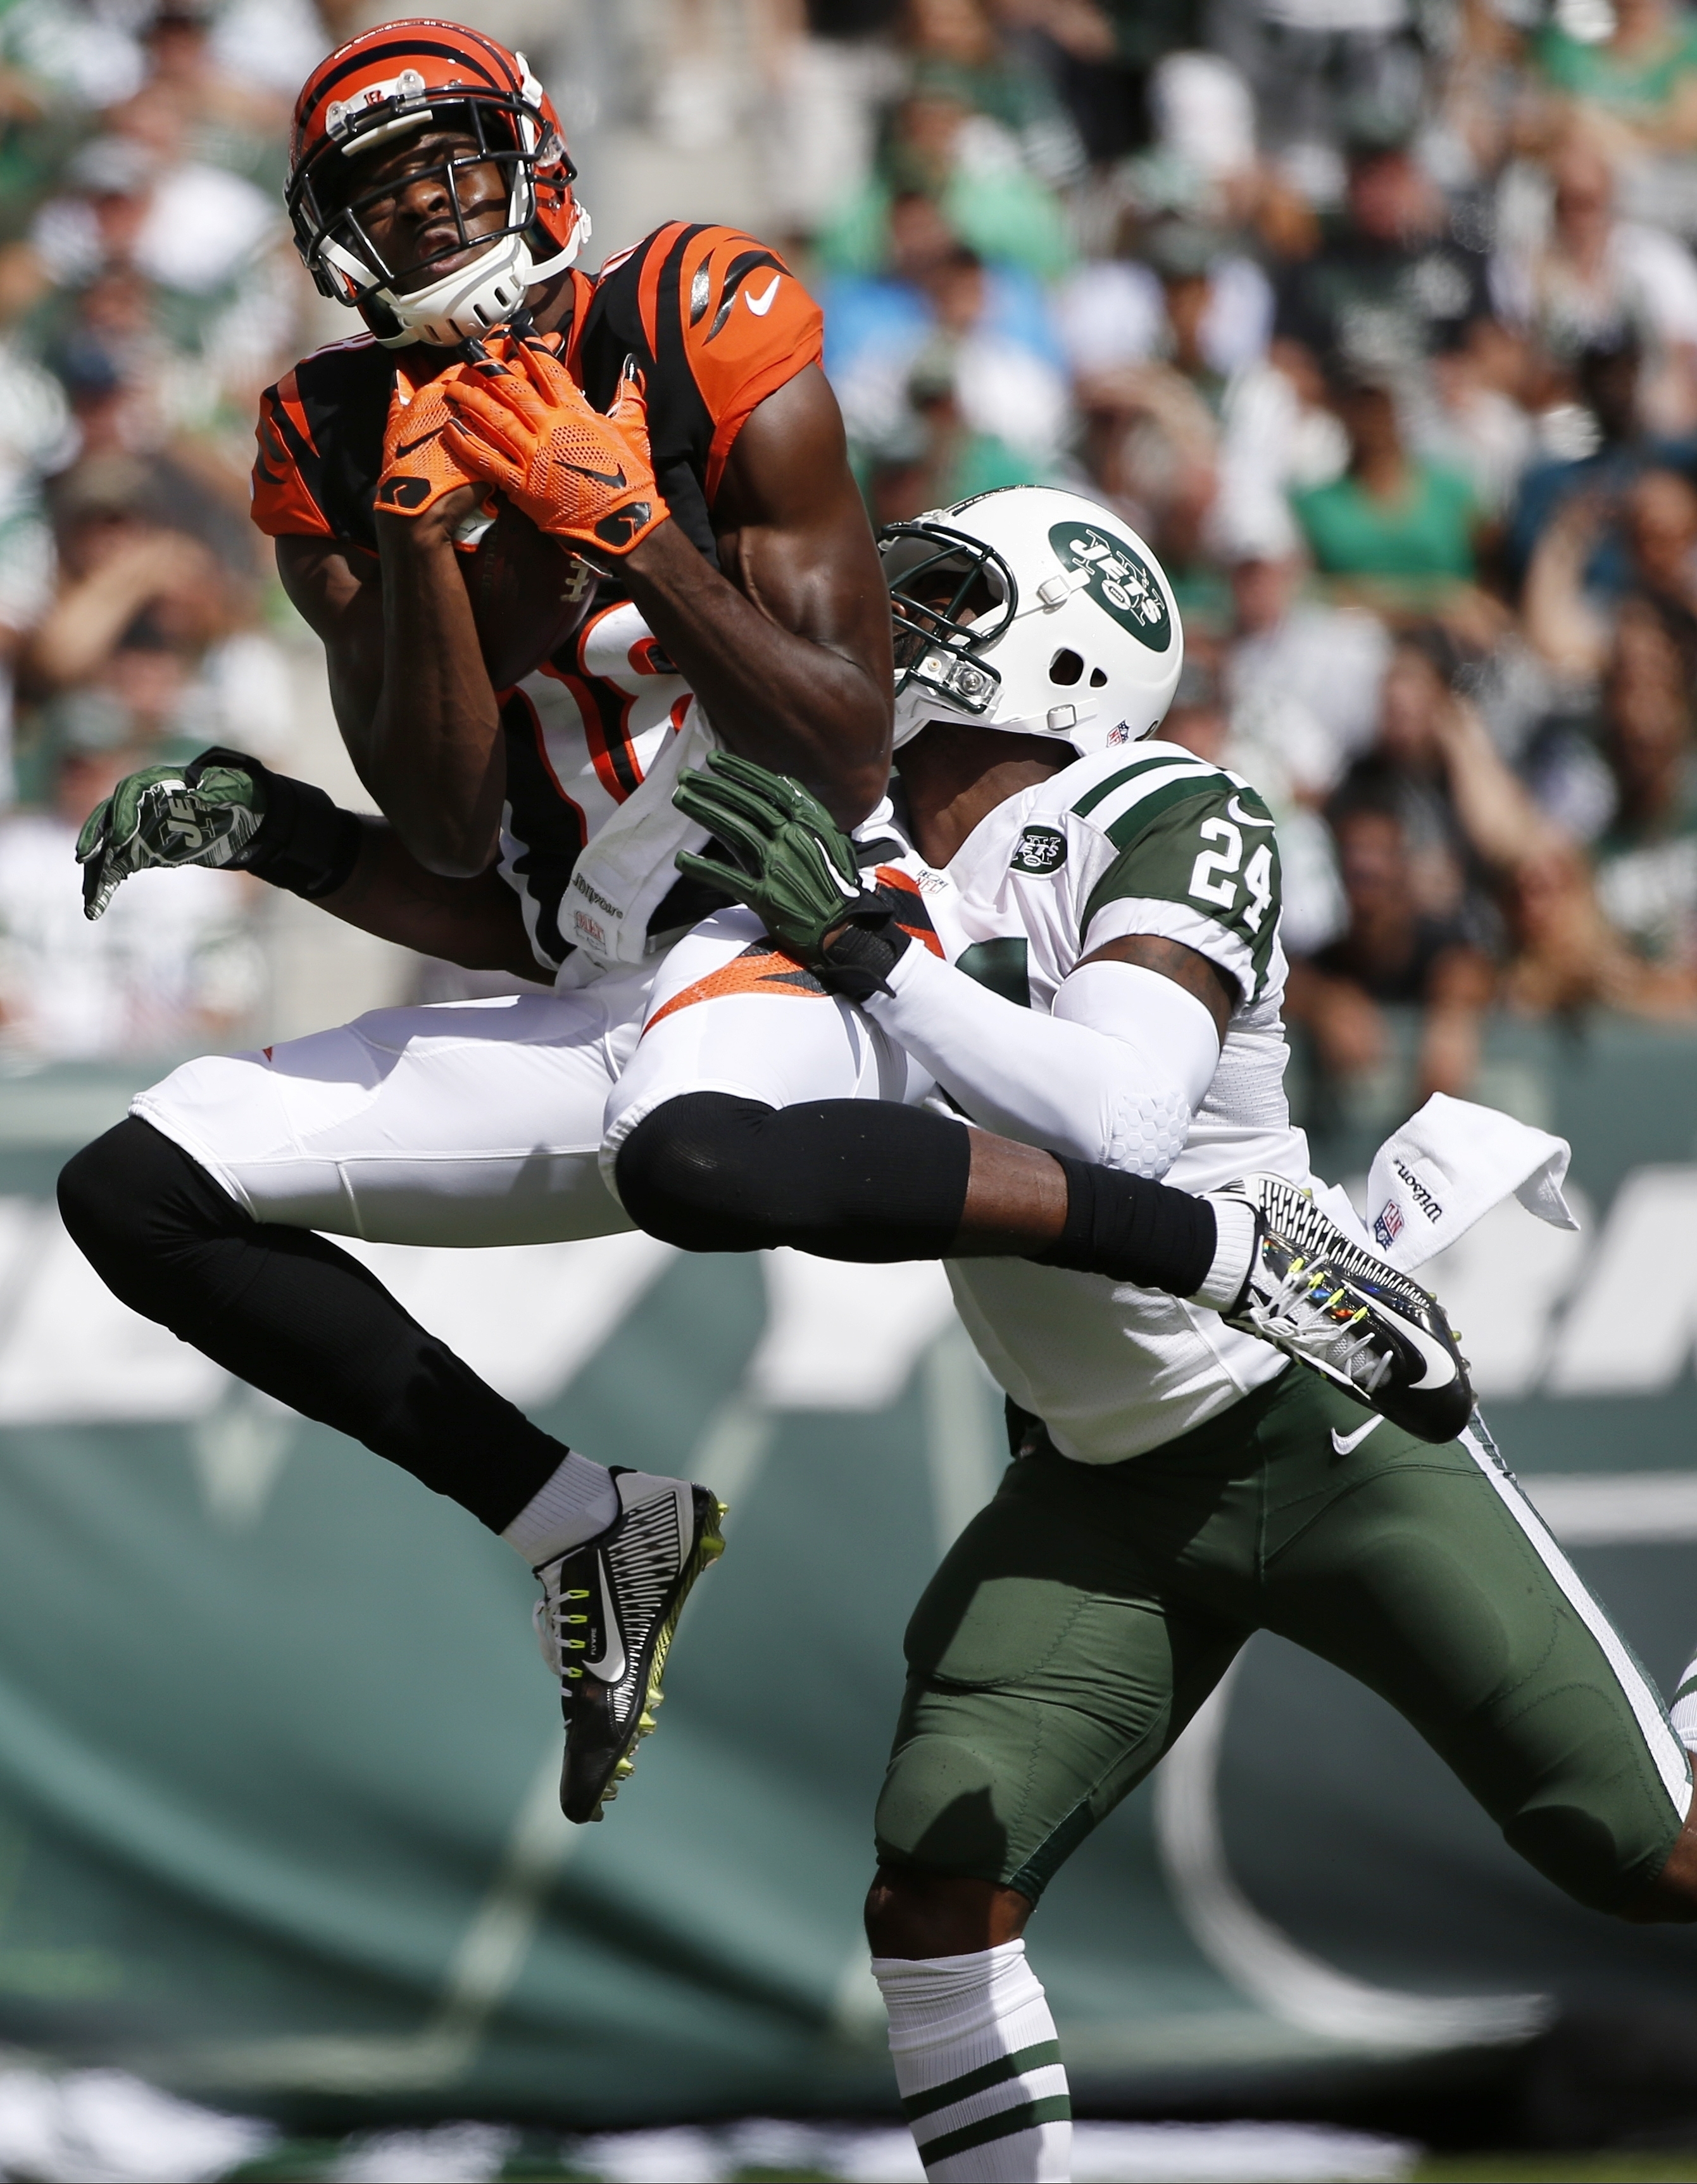 FILE - In this Sunday, Sept. 11, 2016, file photo, Cincinnati Bengals' A.J. Green (18) catches a pass in front of New York Jets' Darrelle Revis (24) during the first half of an NFL football game in East Rutherford, N.J. Green has had a couple of huge game